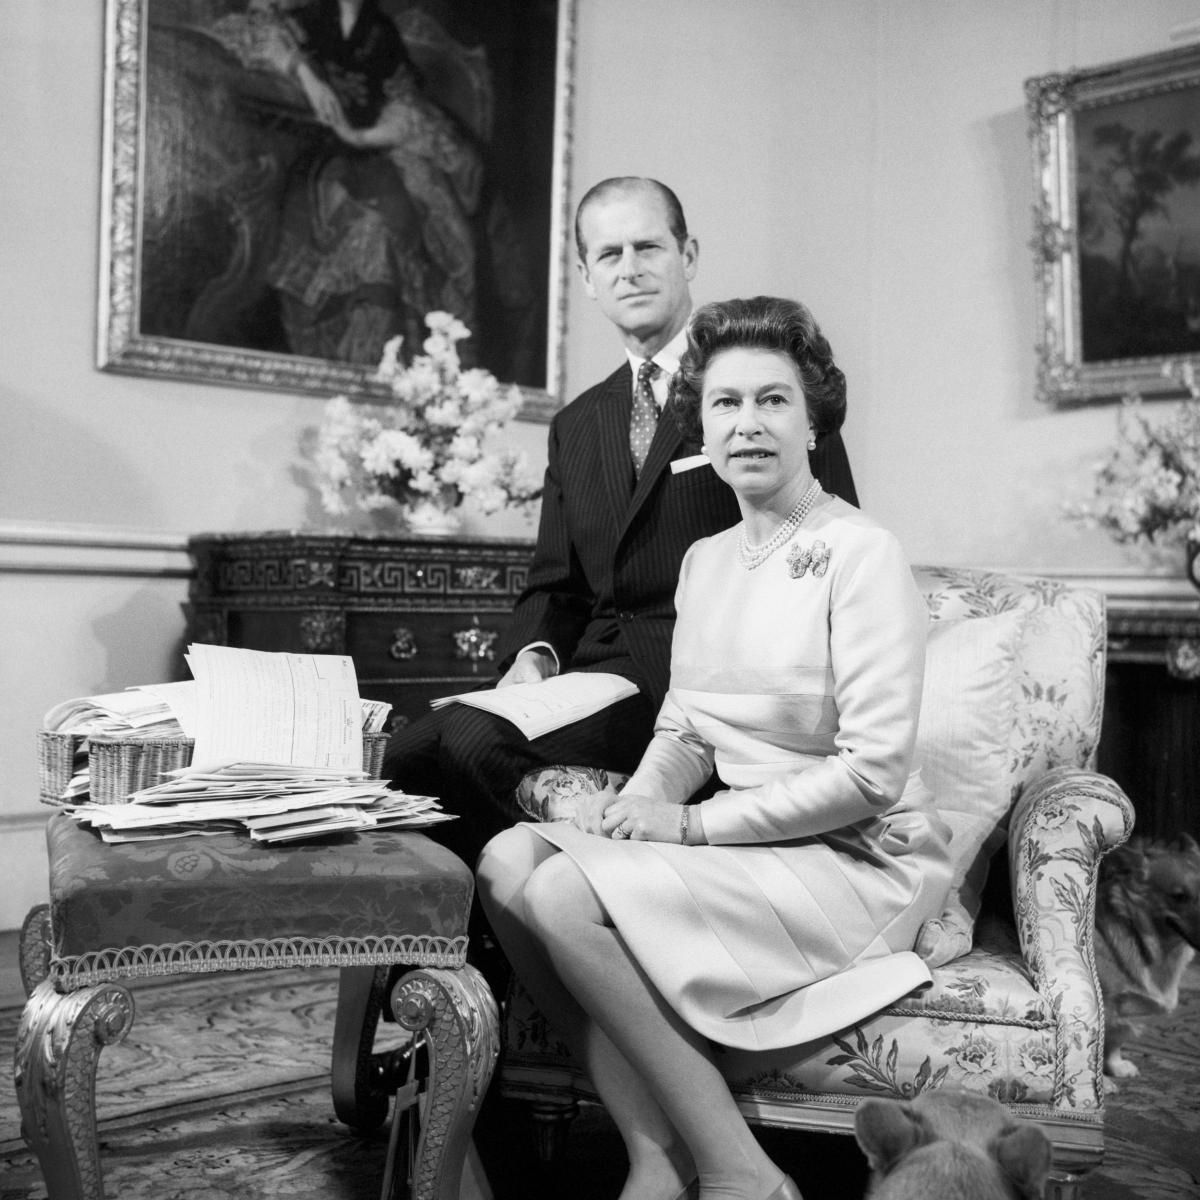 Queen Elizabeth II and the Duke of Edinburgh celebrating their Silver Wedding Anniversary in the Belgian suite in Buckingham Palace Photo (C) GETTY